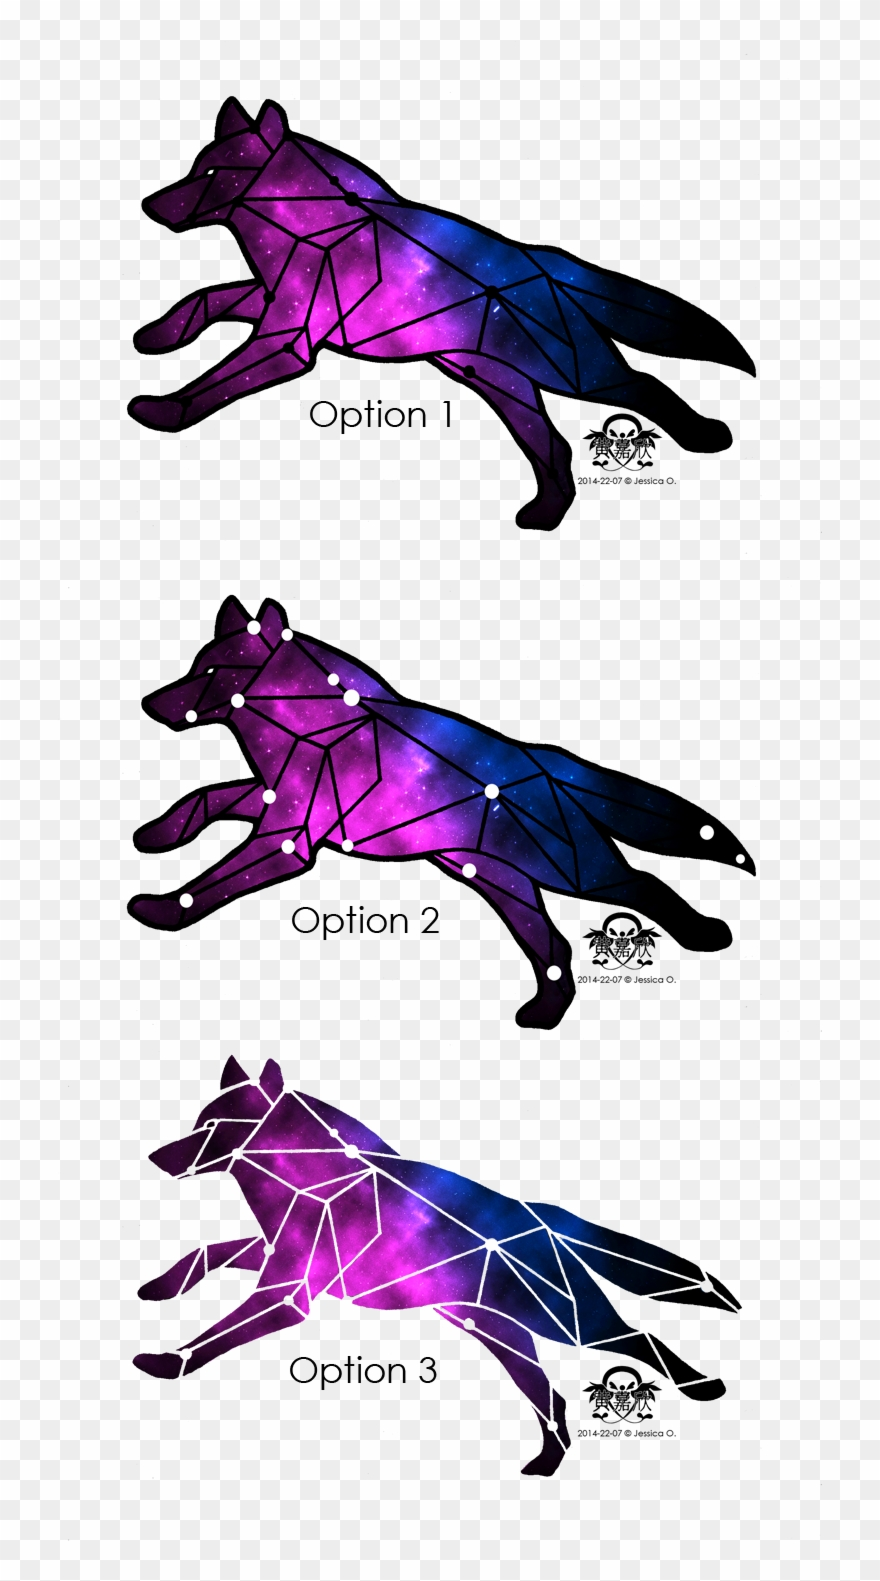 2b06cf9cd Wolf Tattoo Design Based - Lupus Constellation Tattoo Clipart ...